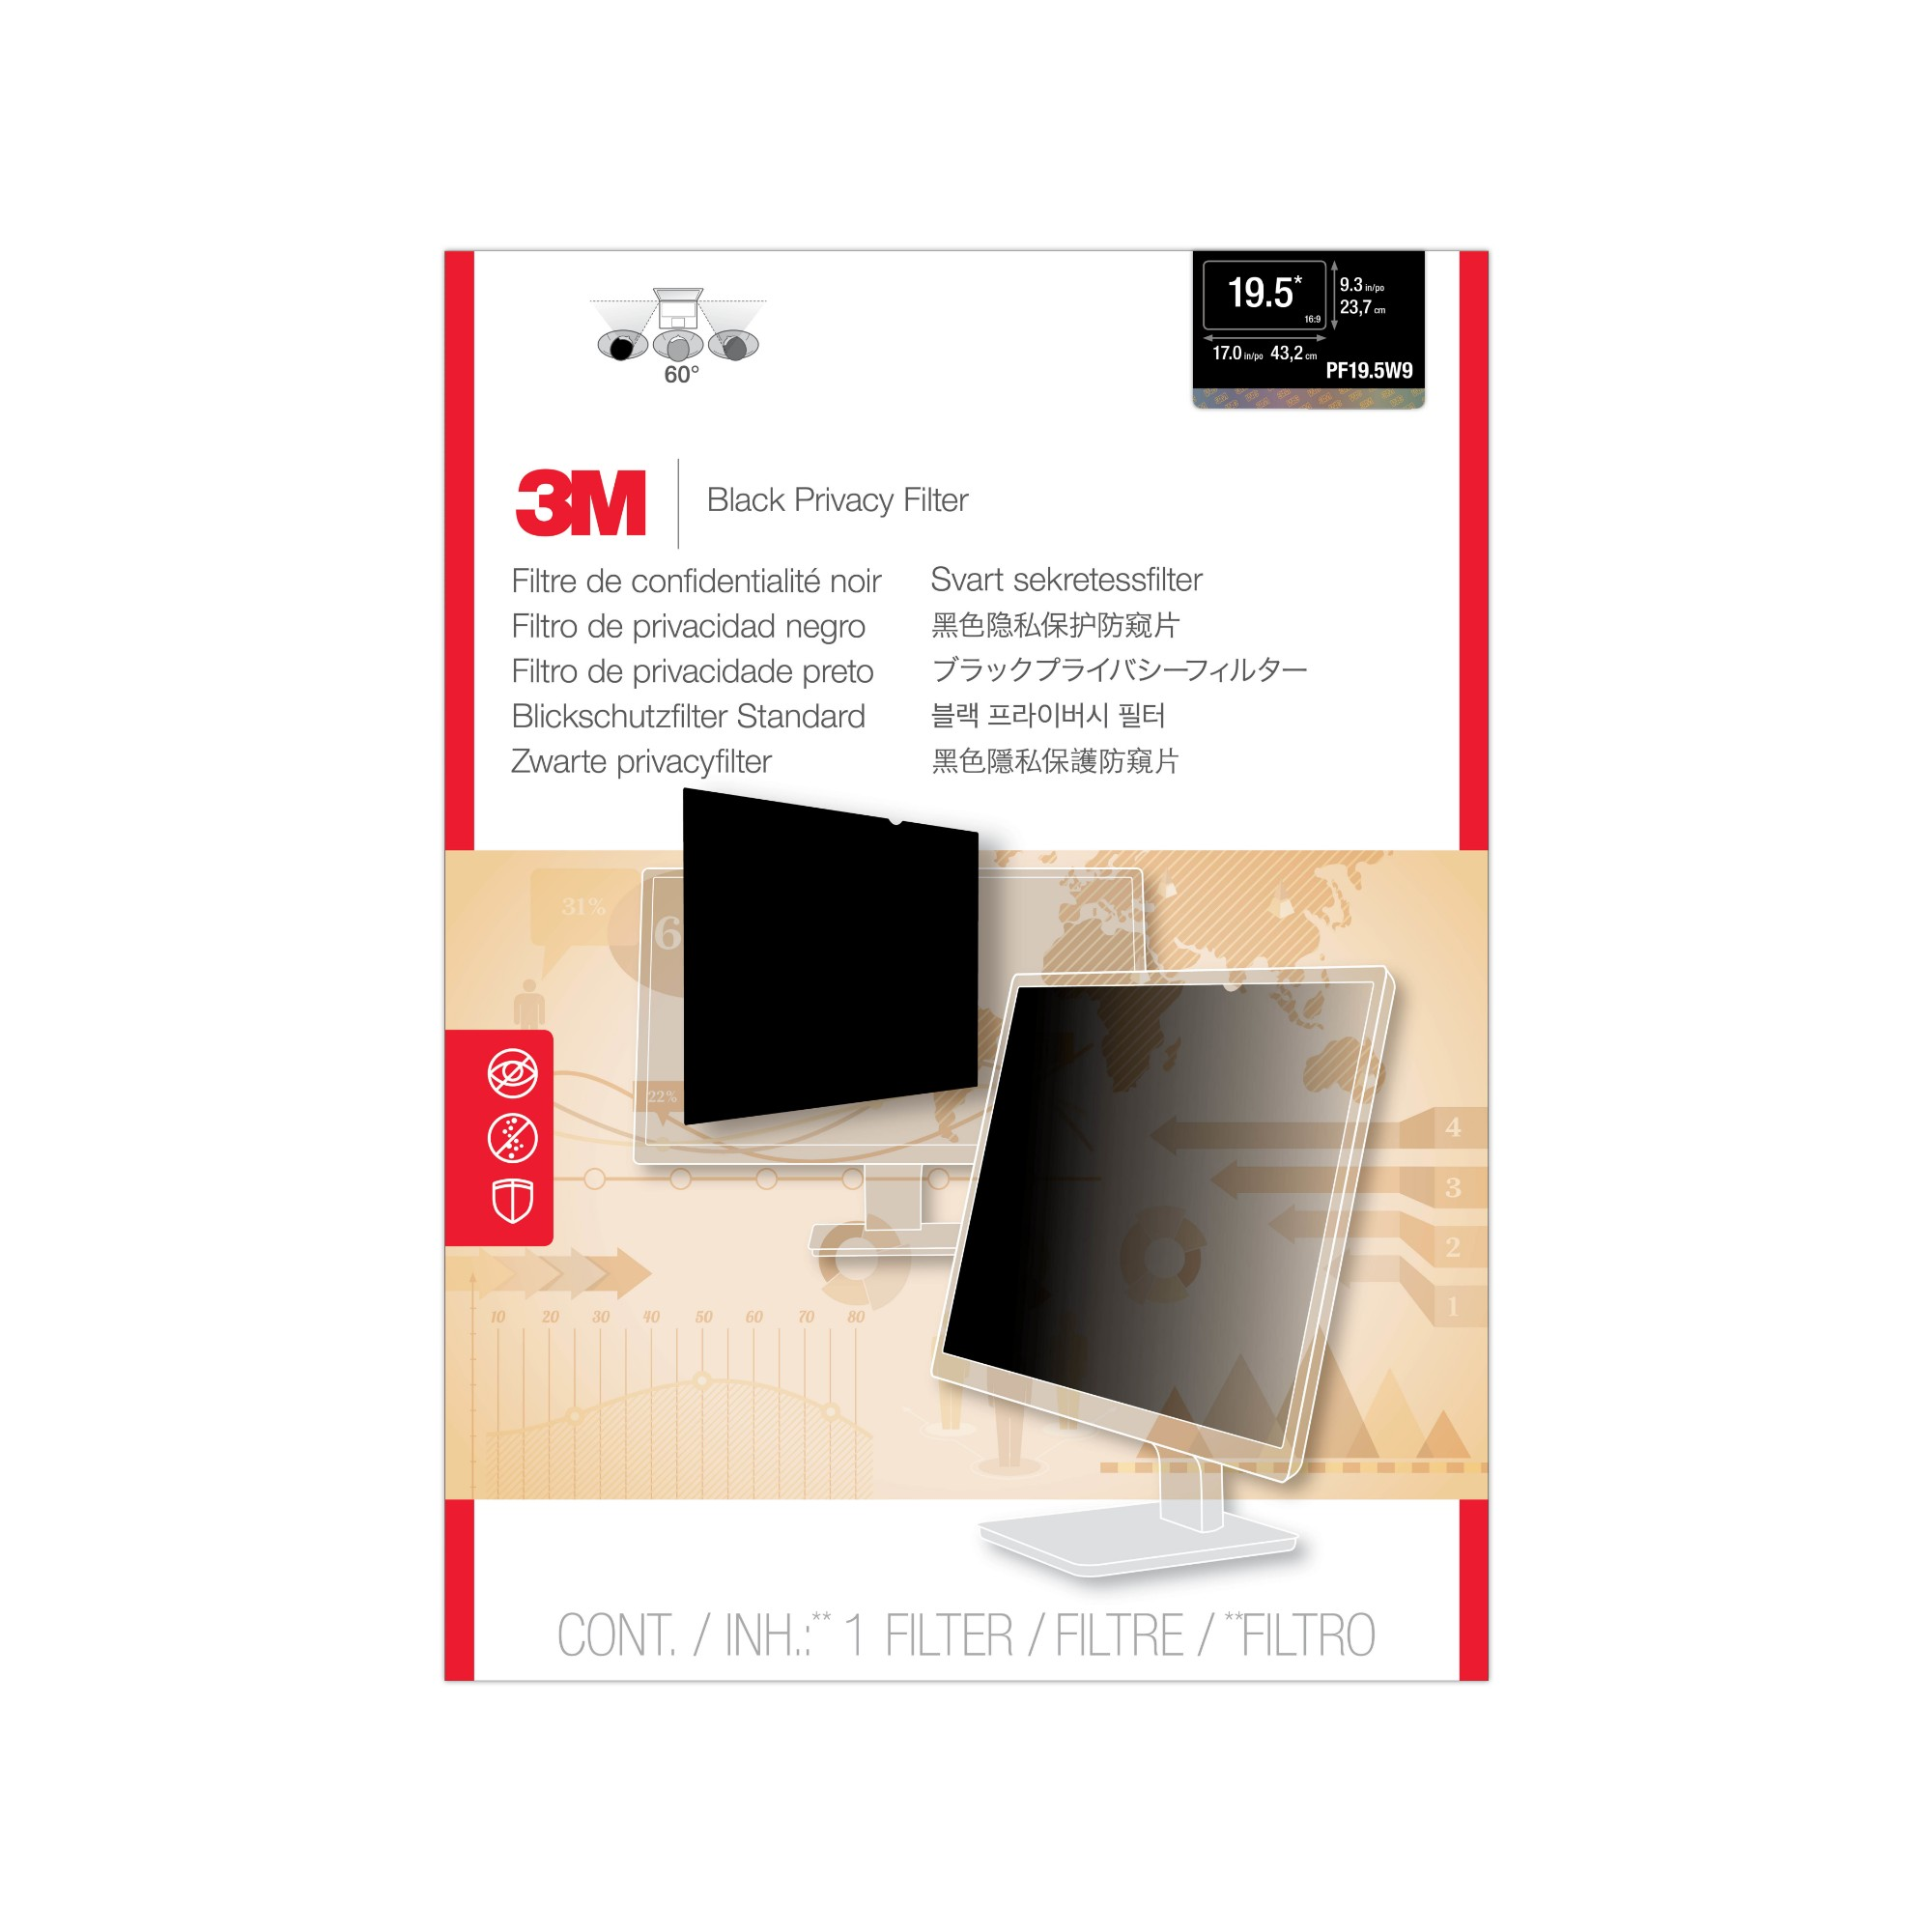 Lovely 1 Button Template Small 1 Page Resume Templates Clean 1.5 Binder Spine Template 10 Label Template Young 1096 Template White1099 Excel Template 3m Label House Pictures To Pin On Pinterest   PinsDaddy